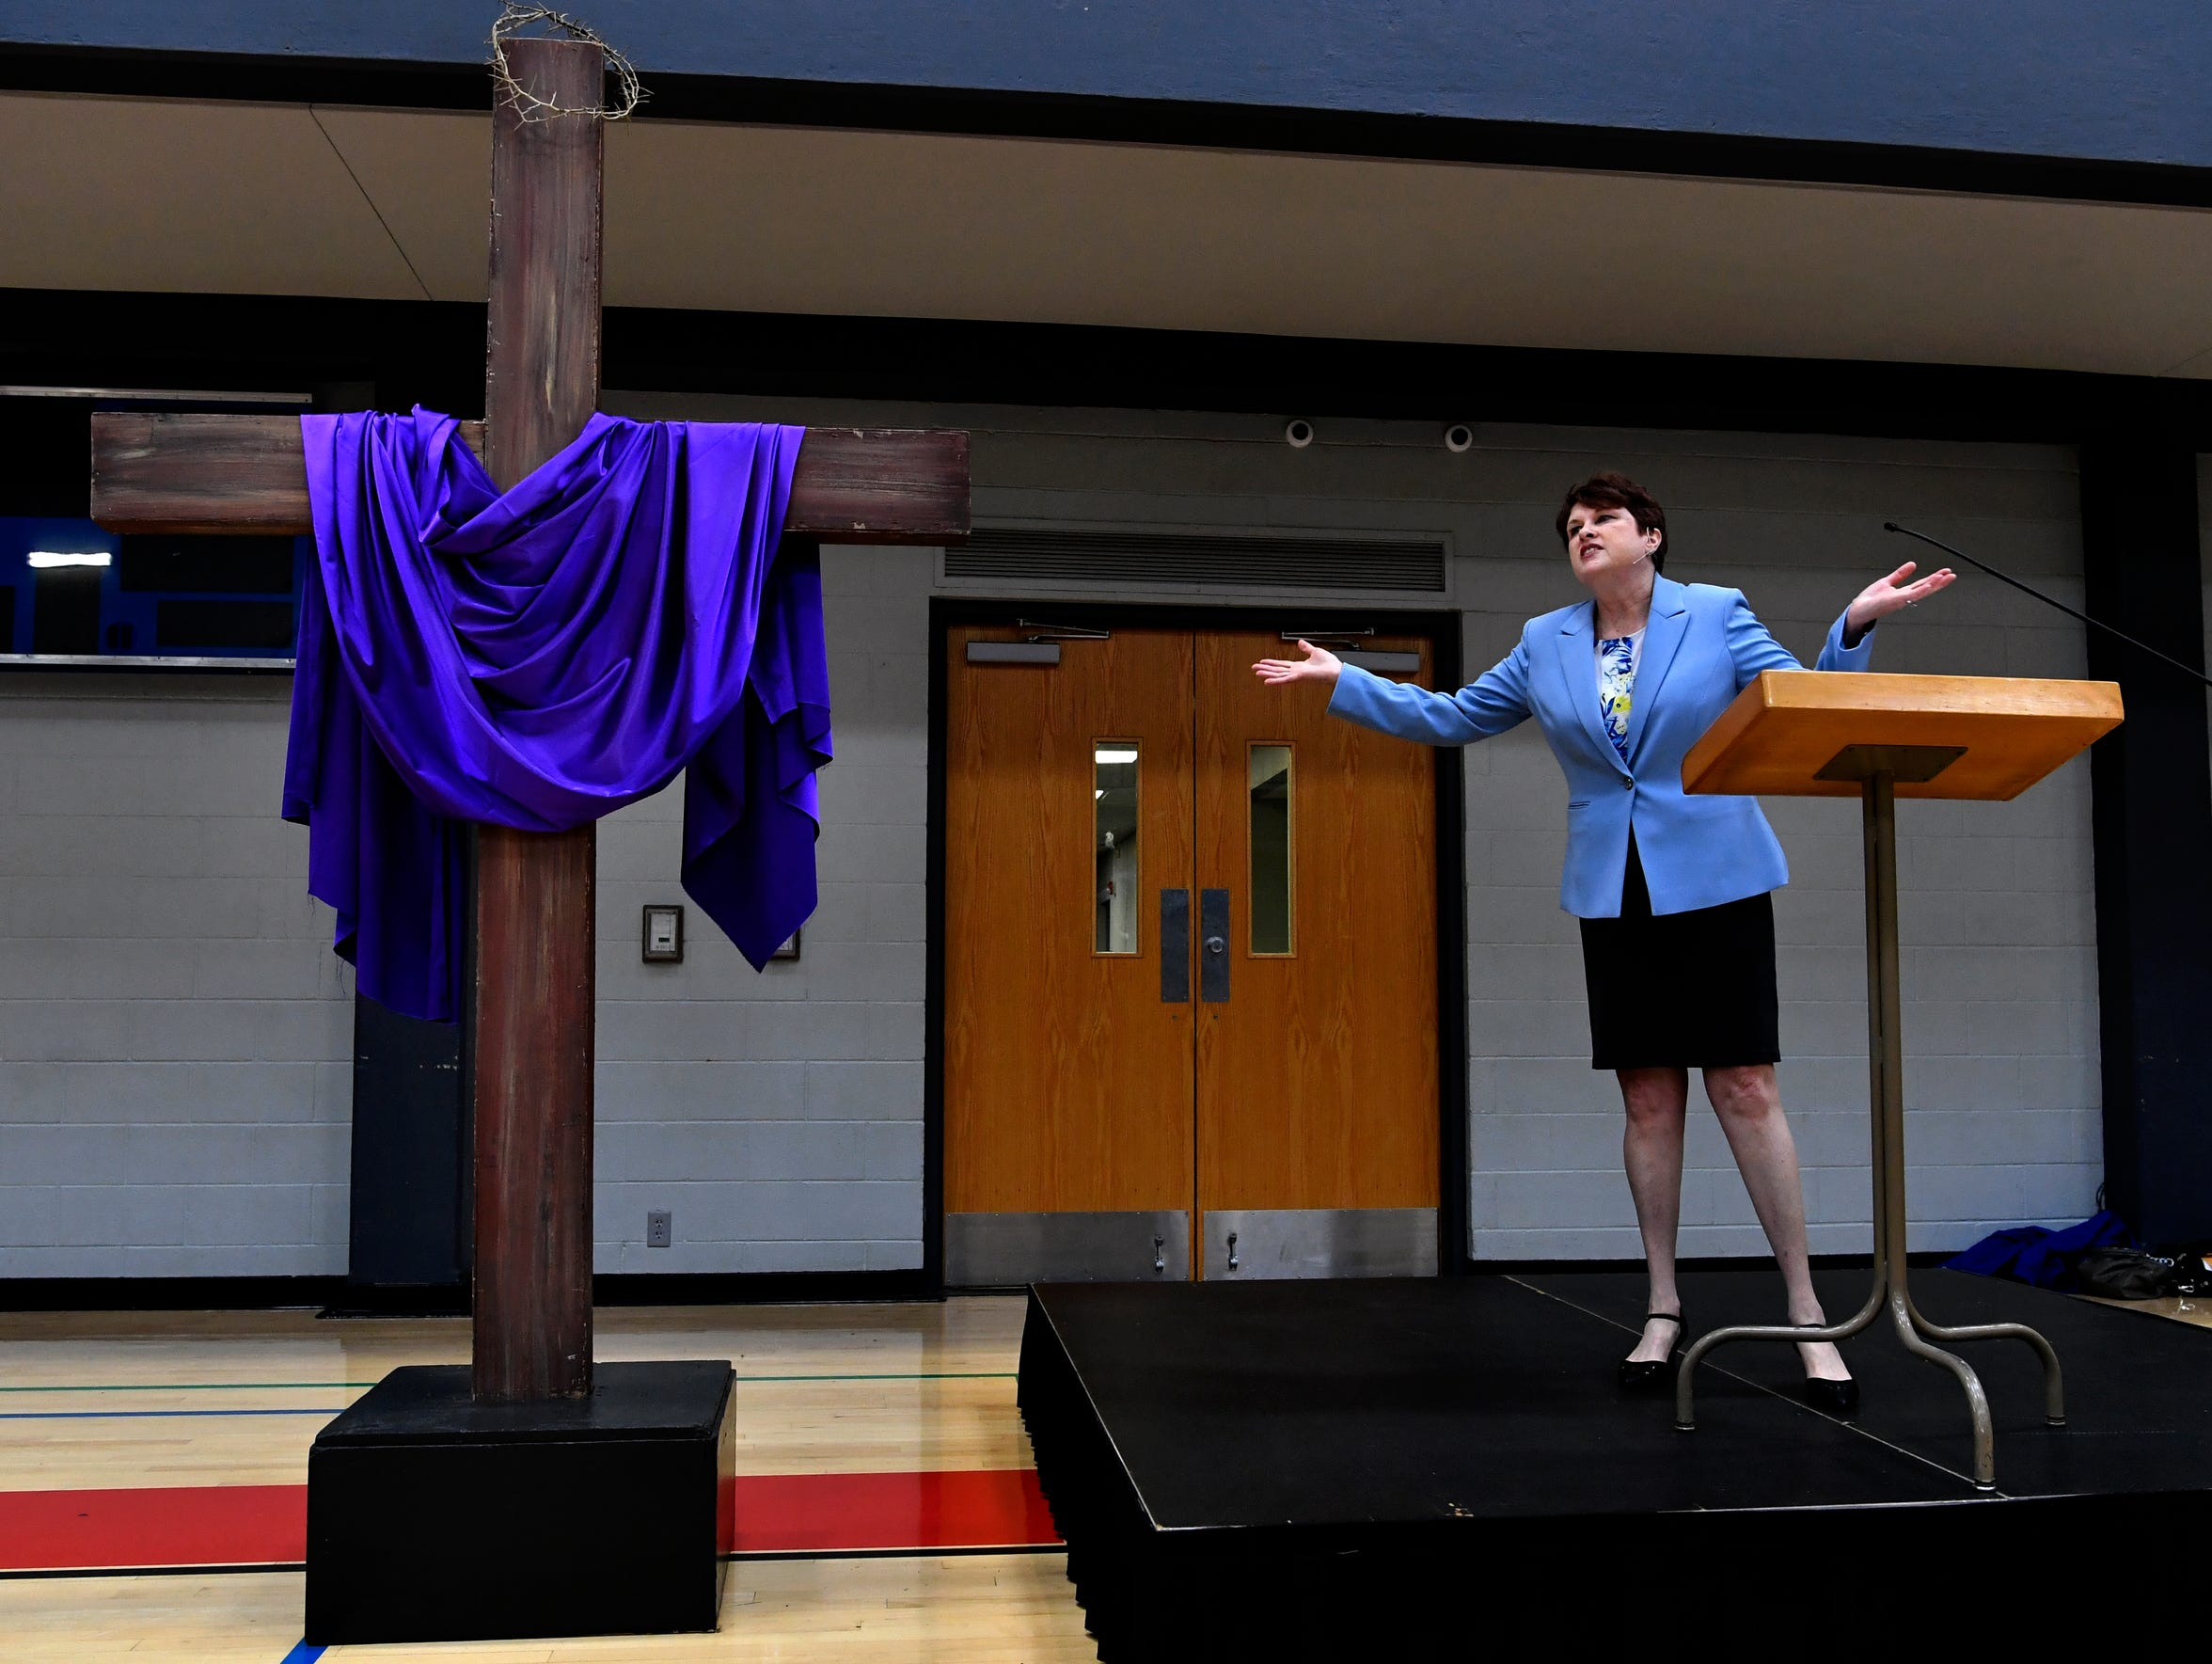 Susan Payne, the interim minister at First Christian Church, speaks during the Holy Week Service on March 28 at First Baptist Church's Family Life Center. Payne is guiding First Christian through its discernment process.